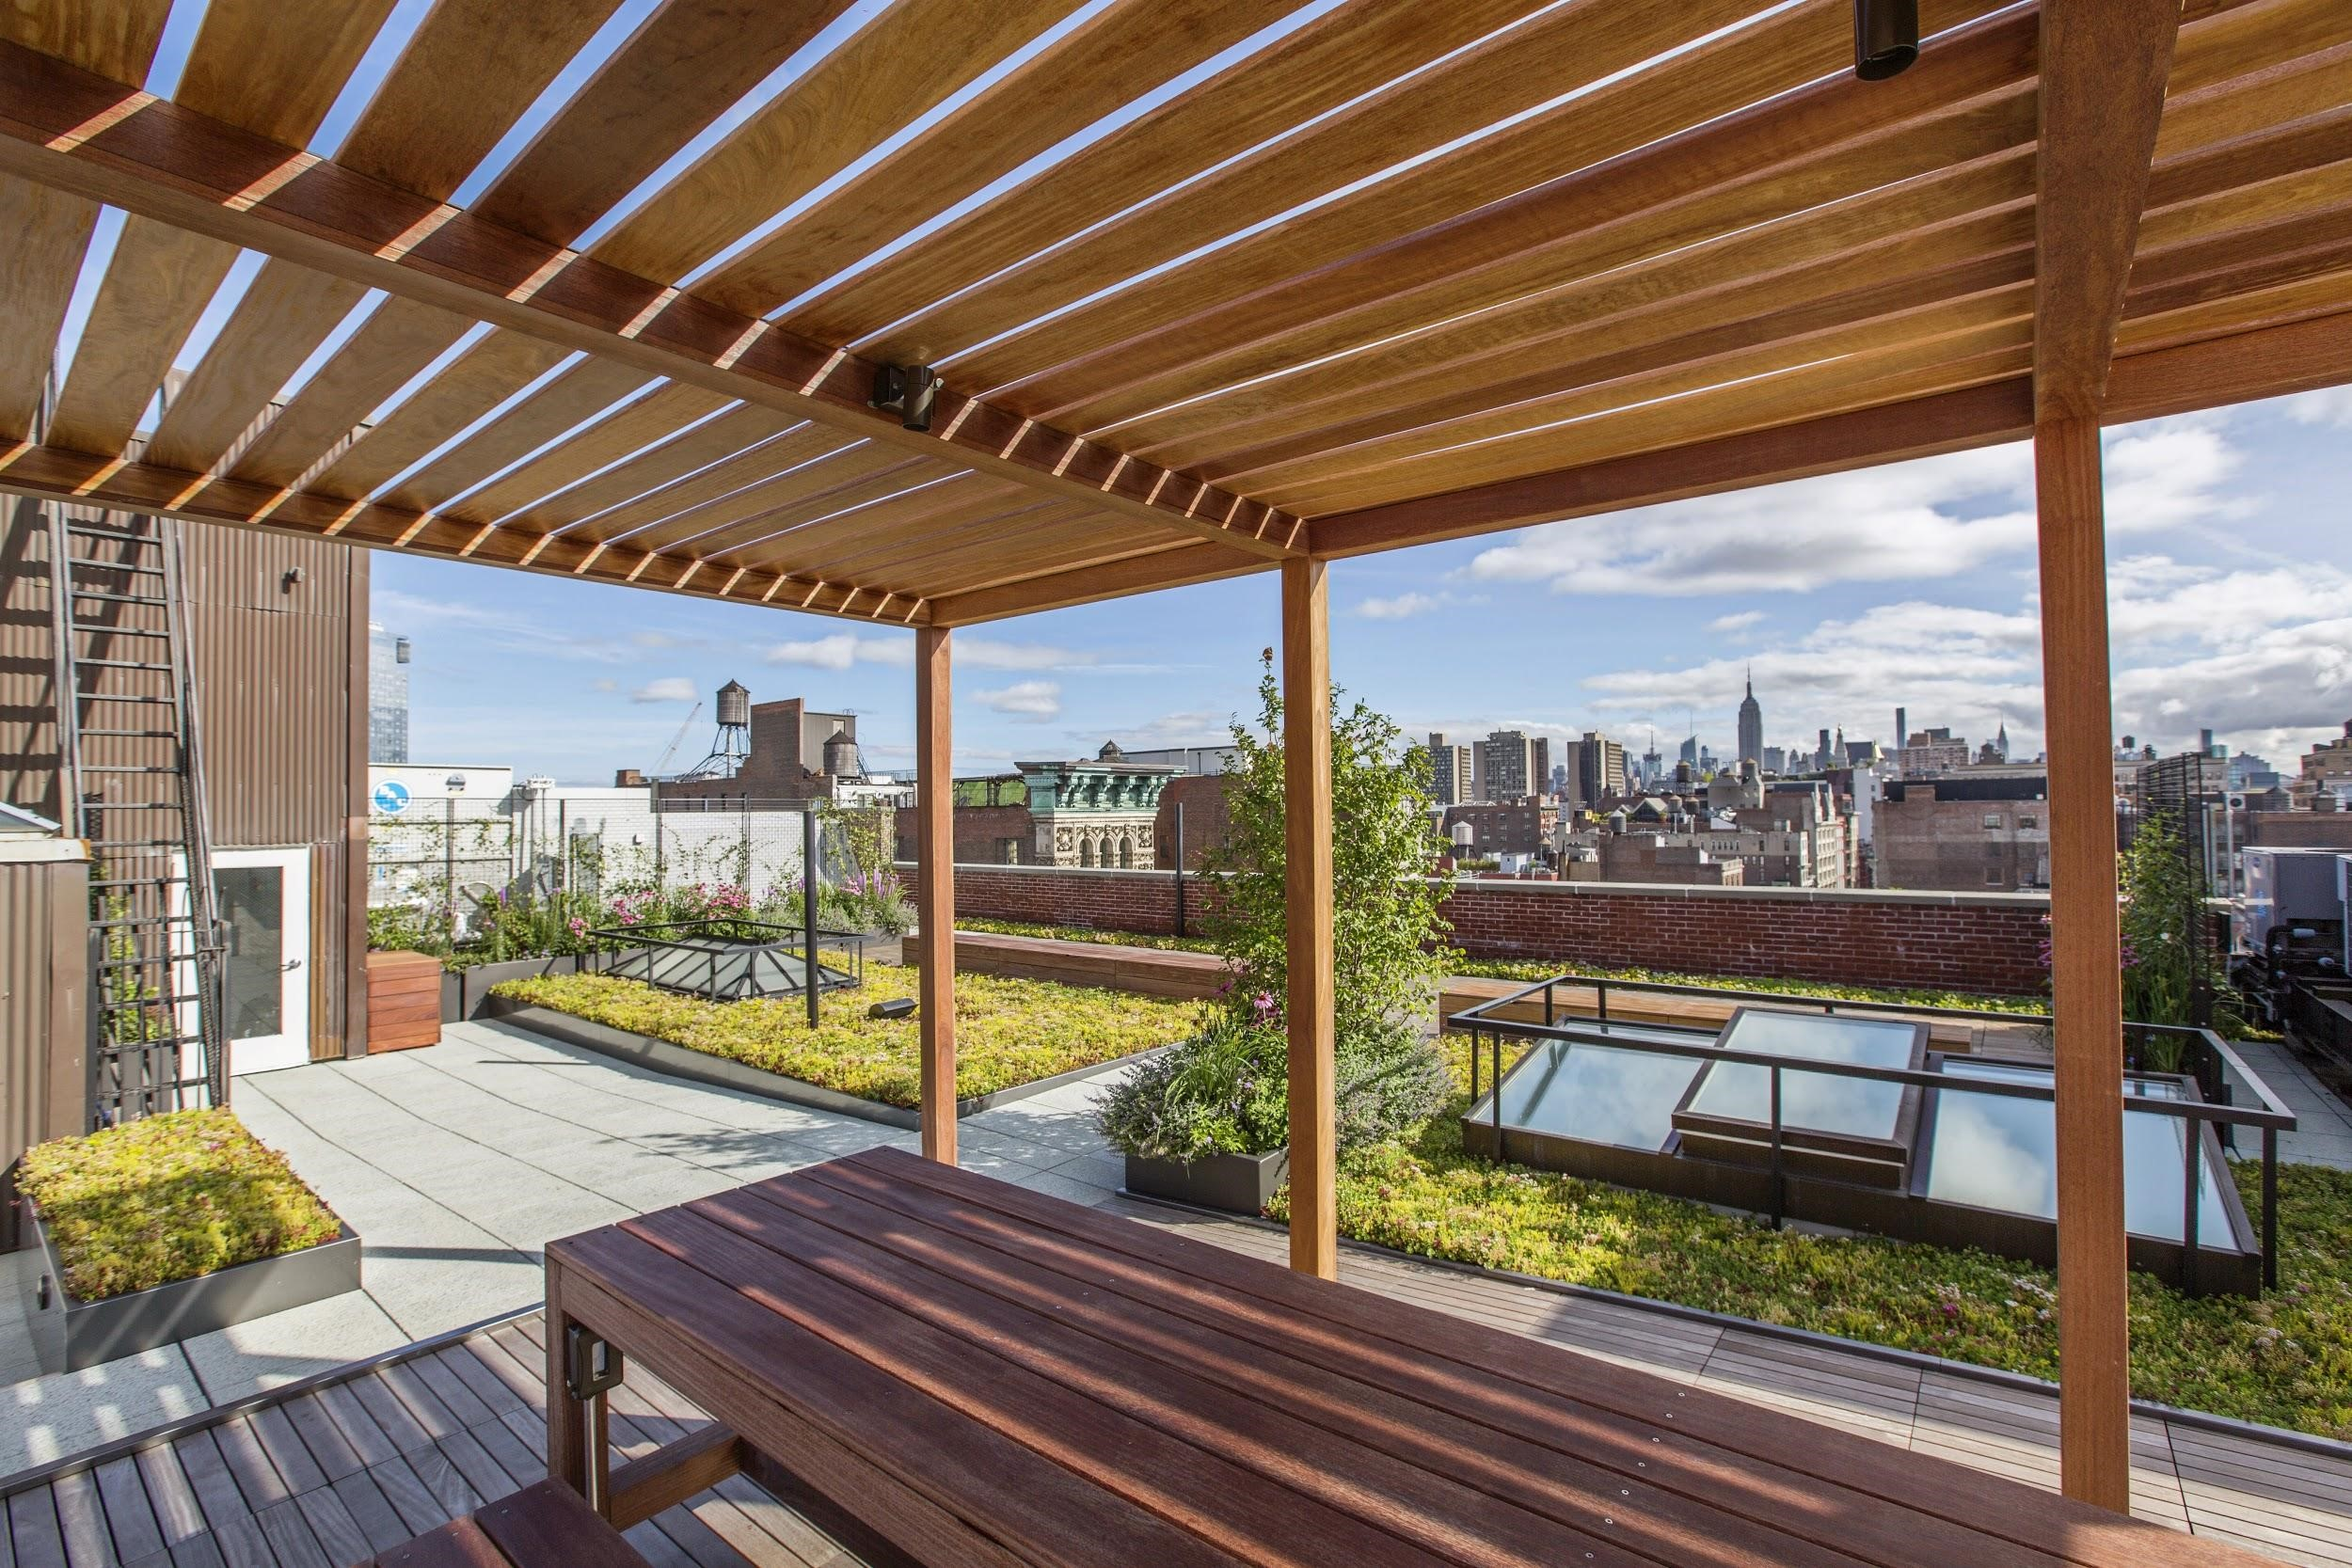 Developing a Rooftop Space for an Urban Getaway